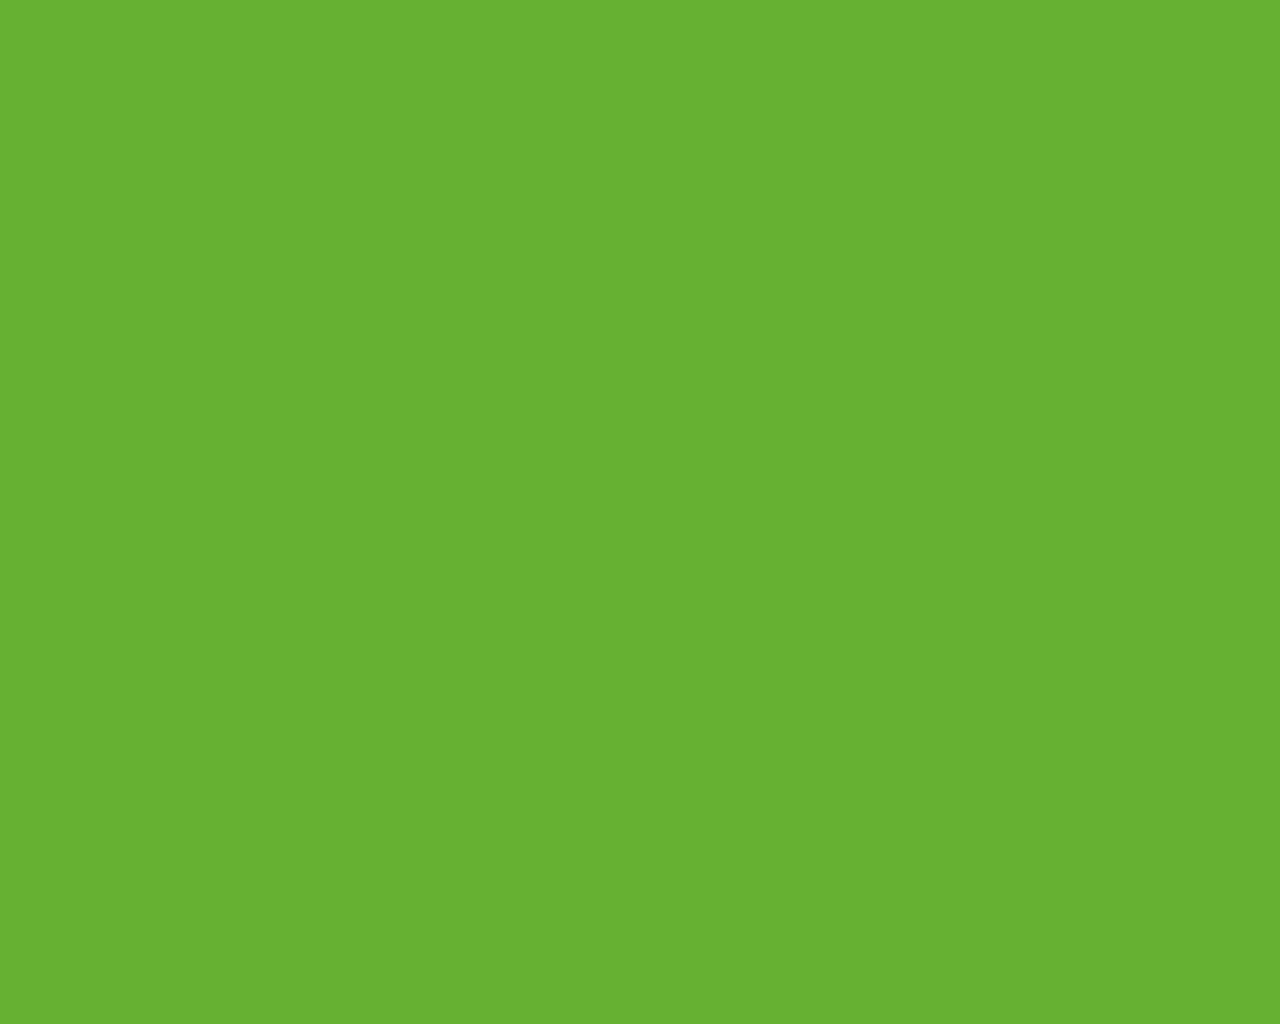 1280x1024 Green RYB Solid Color Background